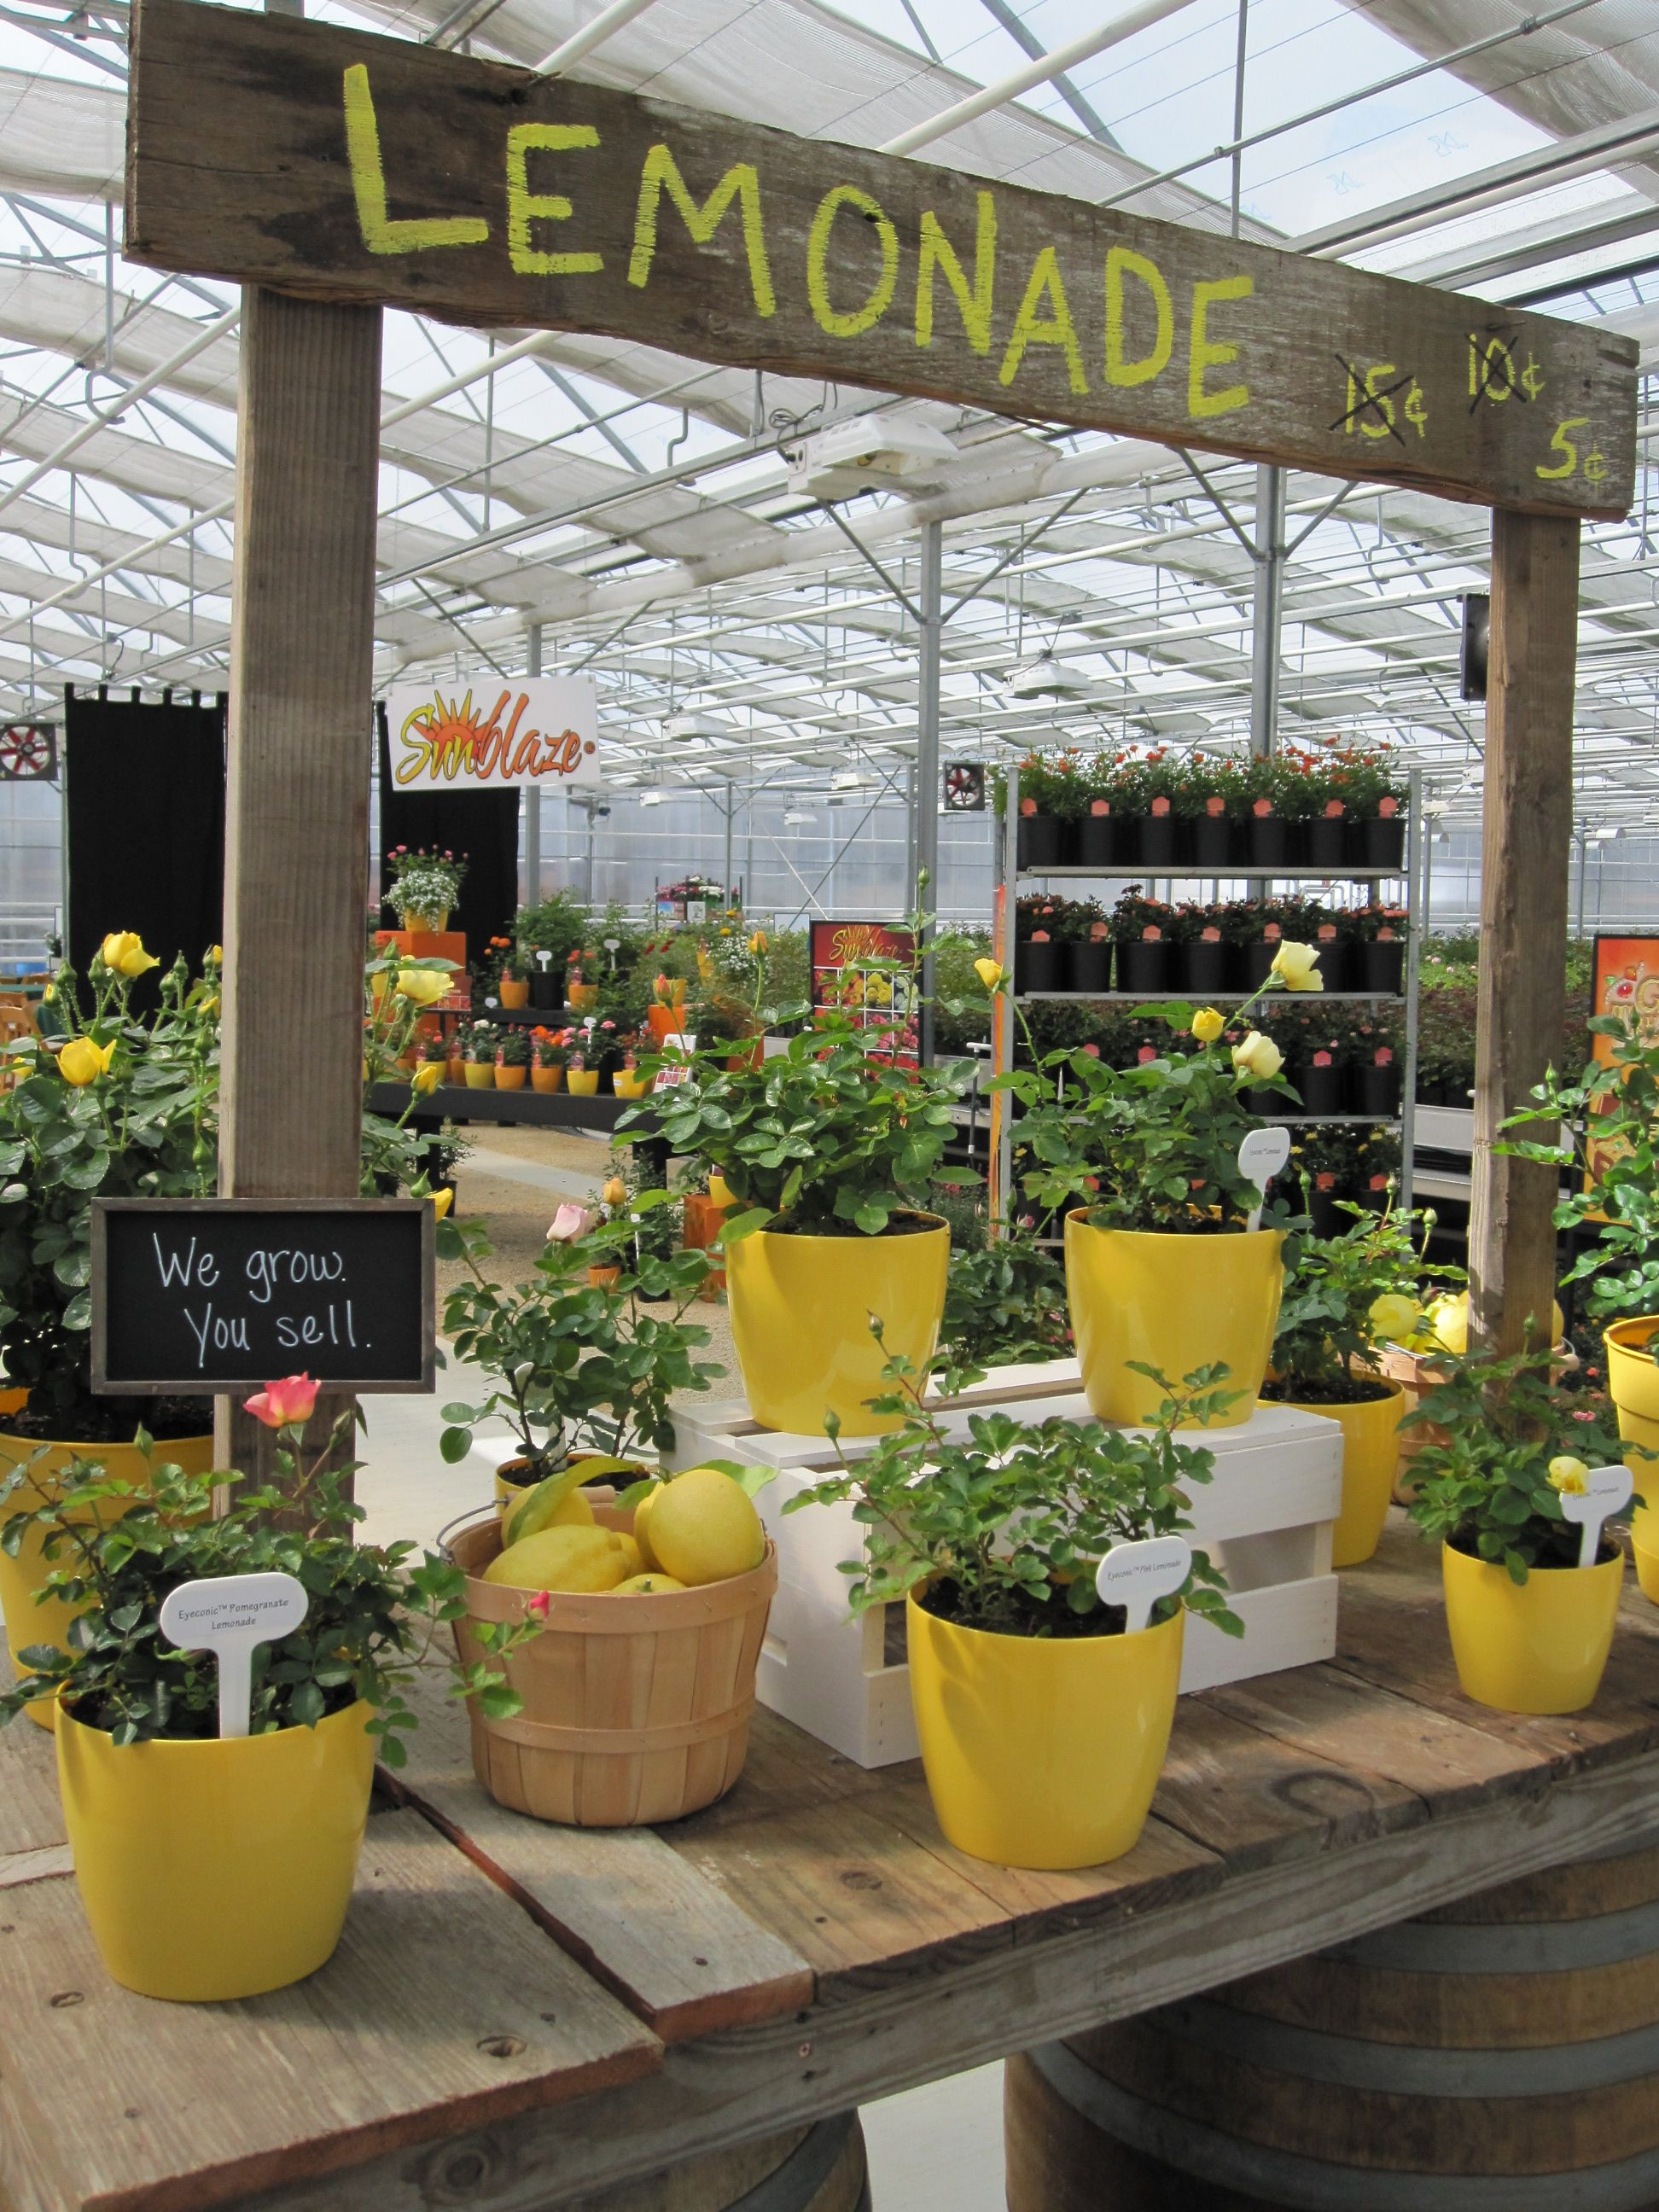 Cute Theme With Images Garden Center Displays Garden Nursery